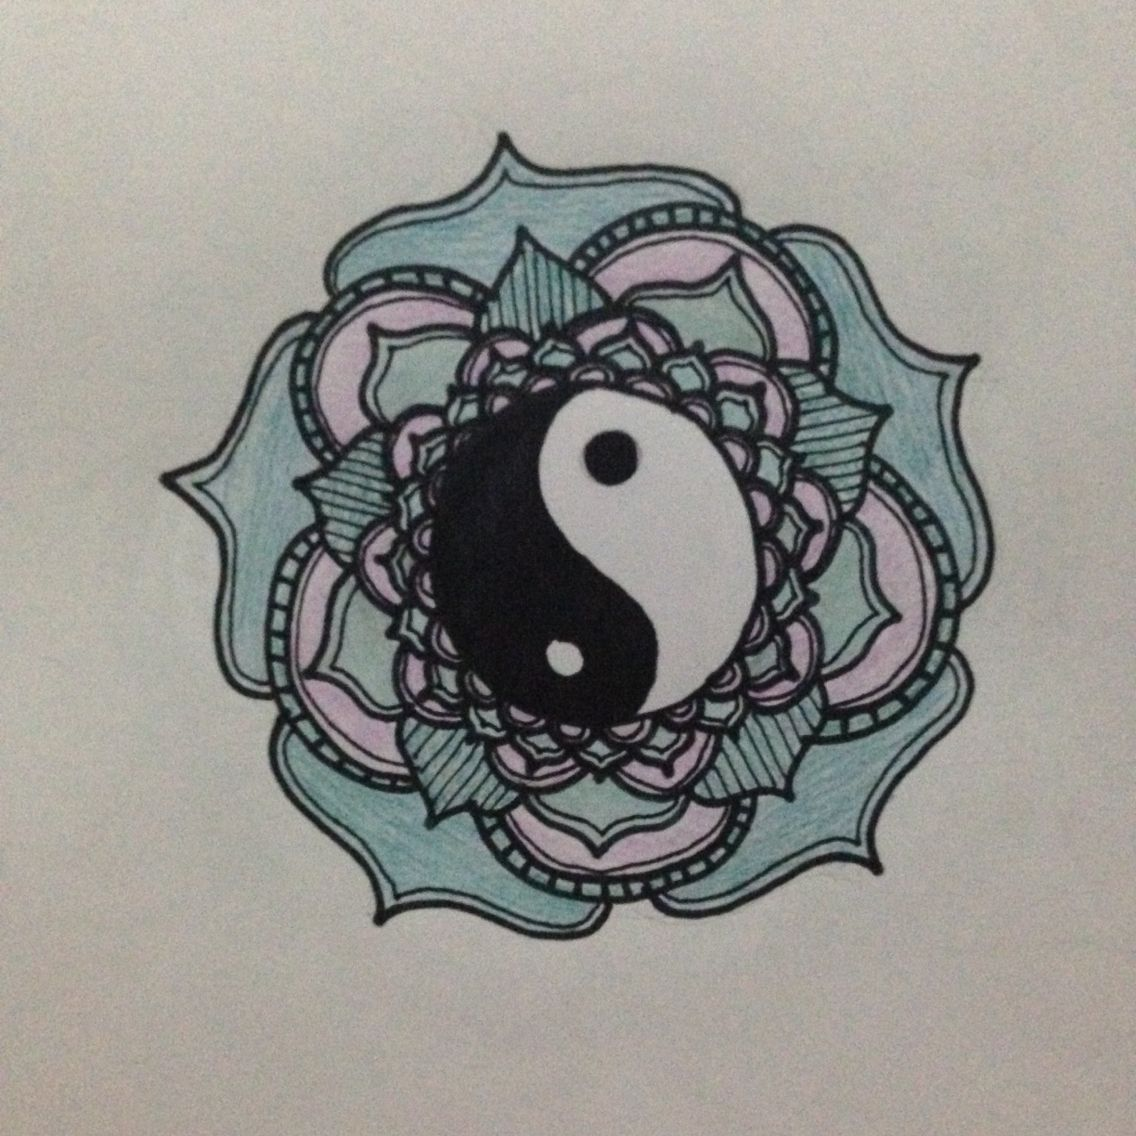 1136x1136 My Drawing. Looking Back On This Drawing, I Realise The Yin Yang